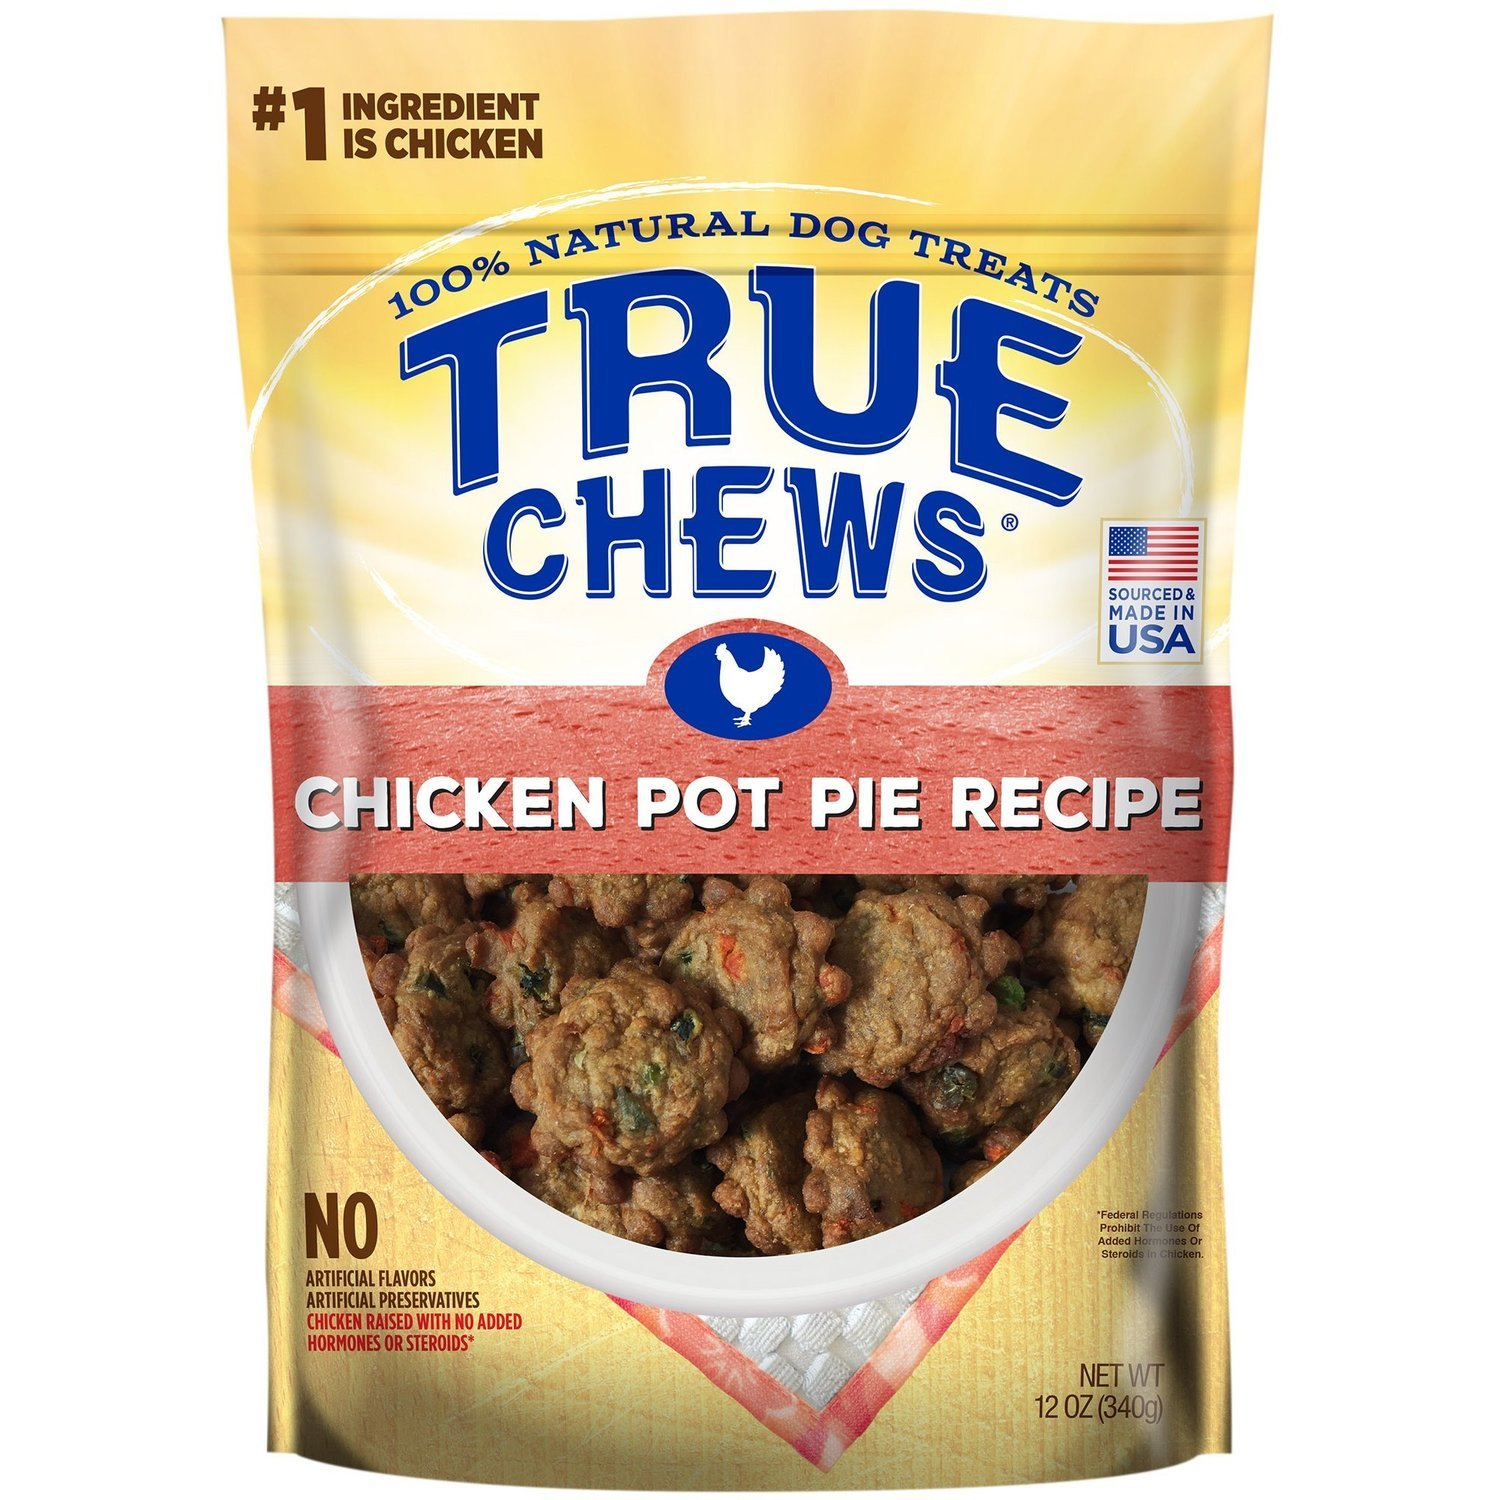 True Chews Chicken Pot Pie Recipe Natural Dog Treats, 12 oz. (5/19) (T.B3)